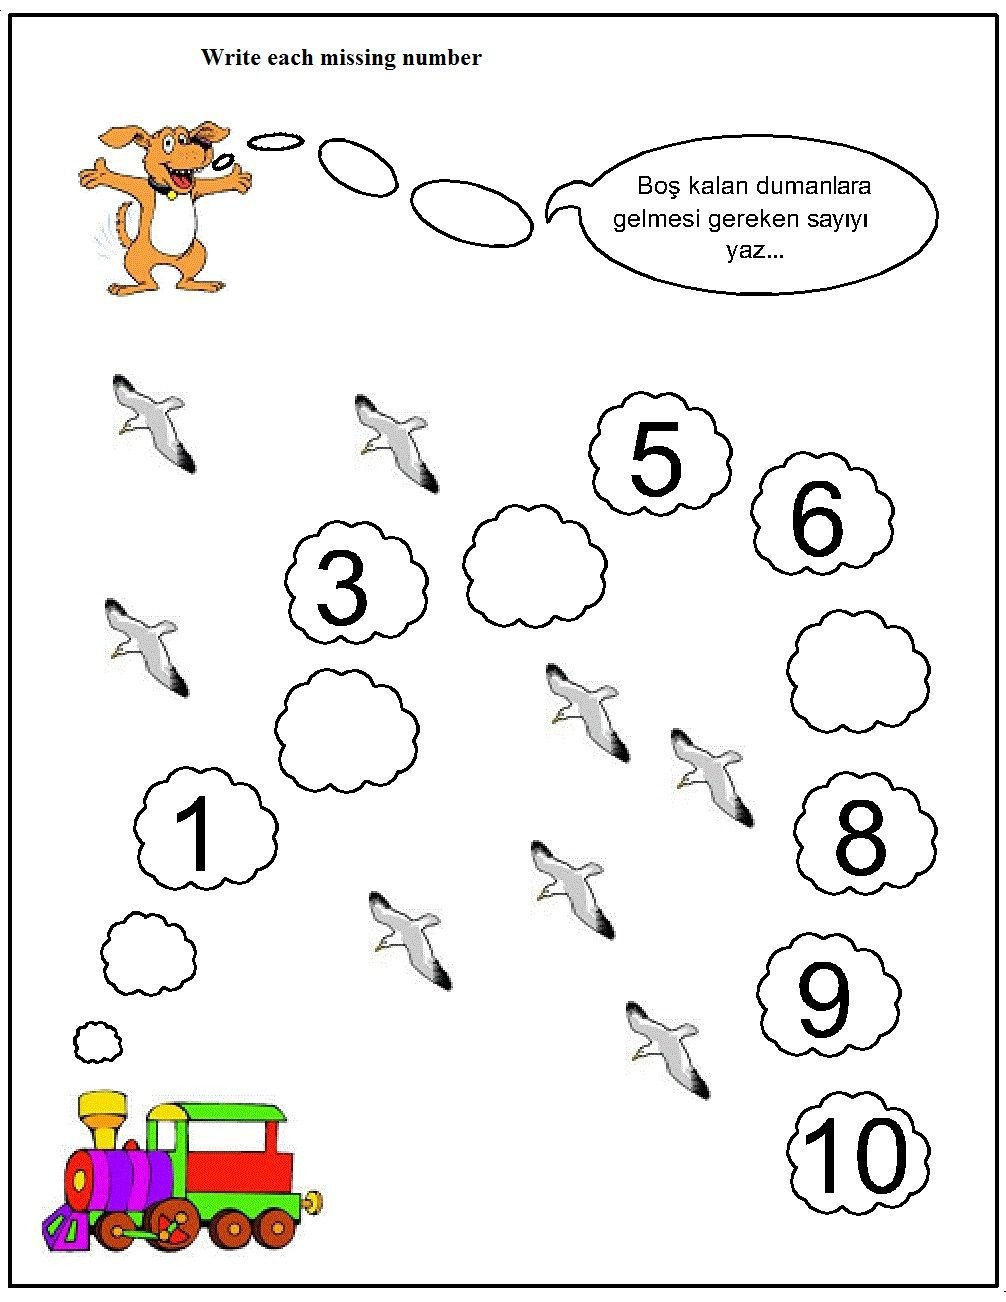 Missing Number Worksheets 1 10 Missing Number Worksheet for Kids 1 10